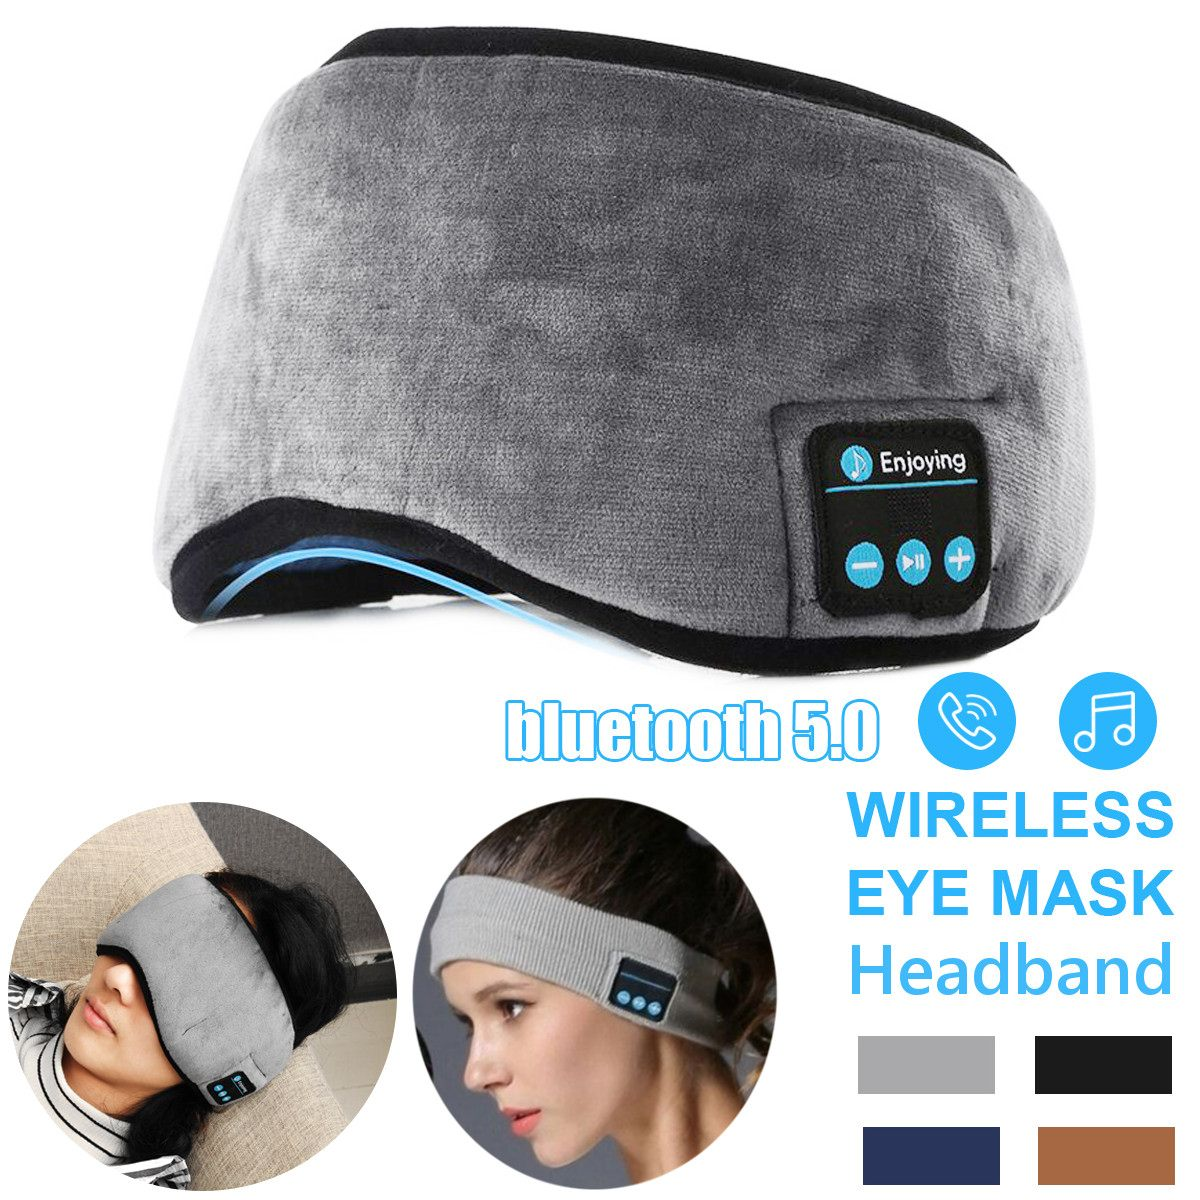 Wireless bluetooth 5.0 Earphones Sleeping Eye Mask Music  1